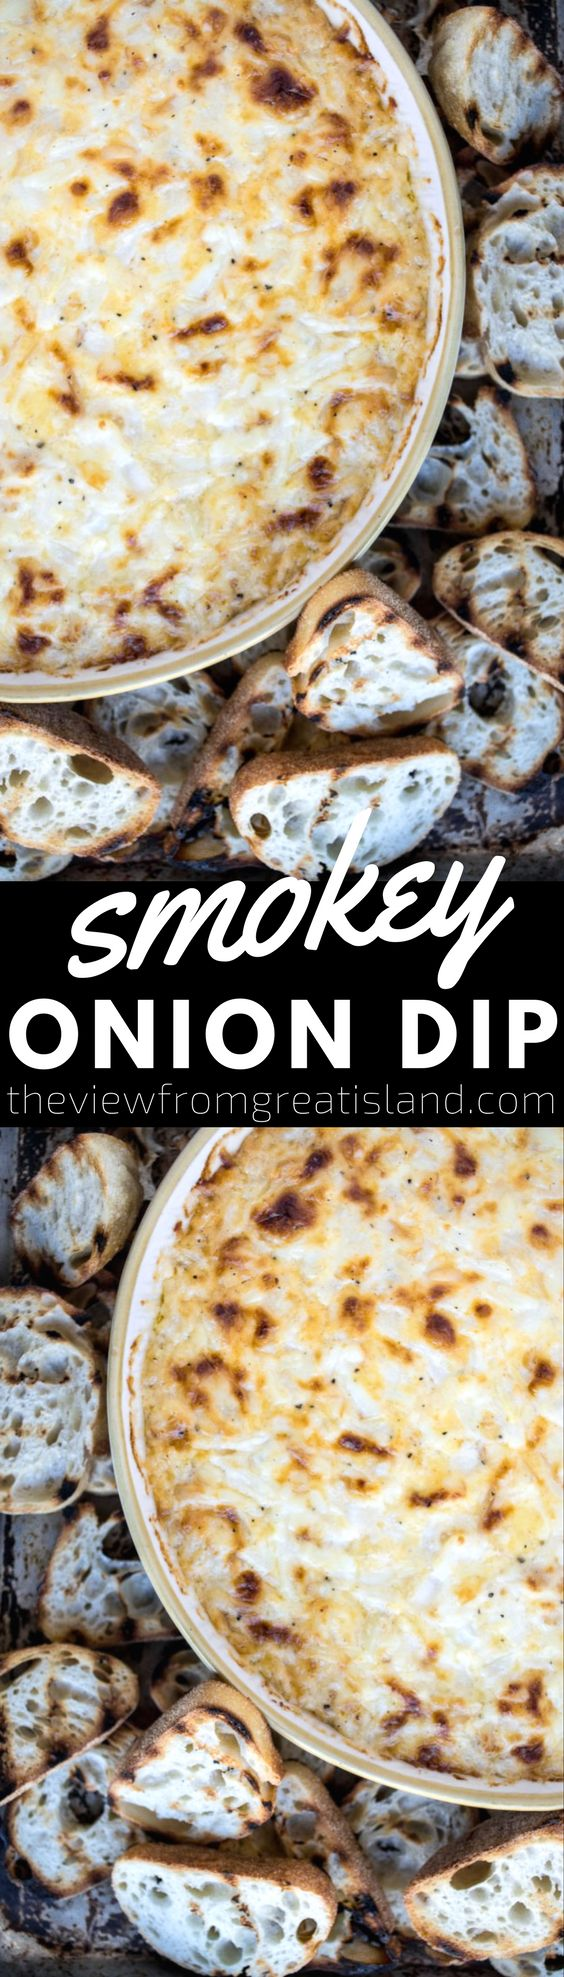 Smokey Onion Dip ~ this creamy, cheesy baked onion dip has a hint of smokey flavor which makes it stand out from the rest! #appetizer #oniondip #hotdip #bakedoniondip #oniondiprecipe #vidaliaonion #mauionion #sweetonions #cheesedip #hotcheesedip #bestoniondip #party #entertaining